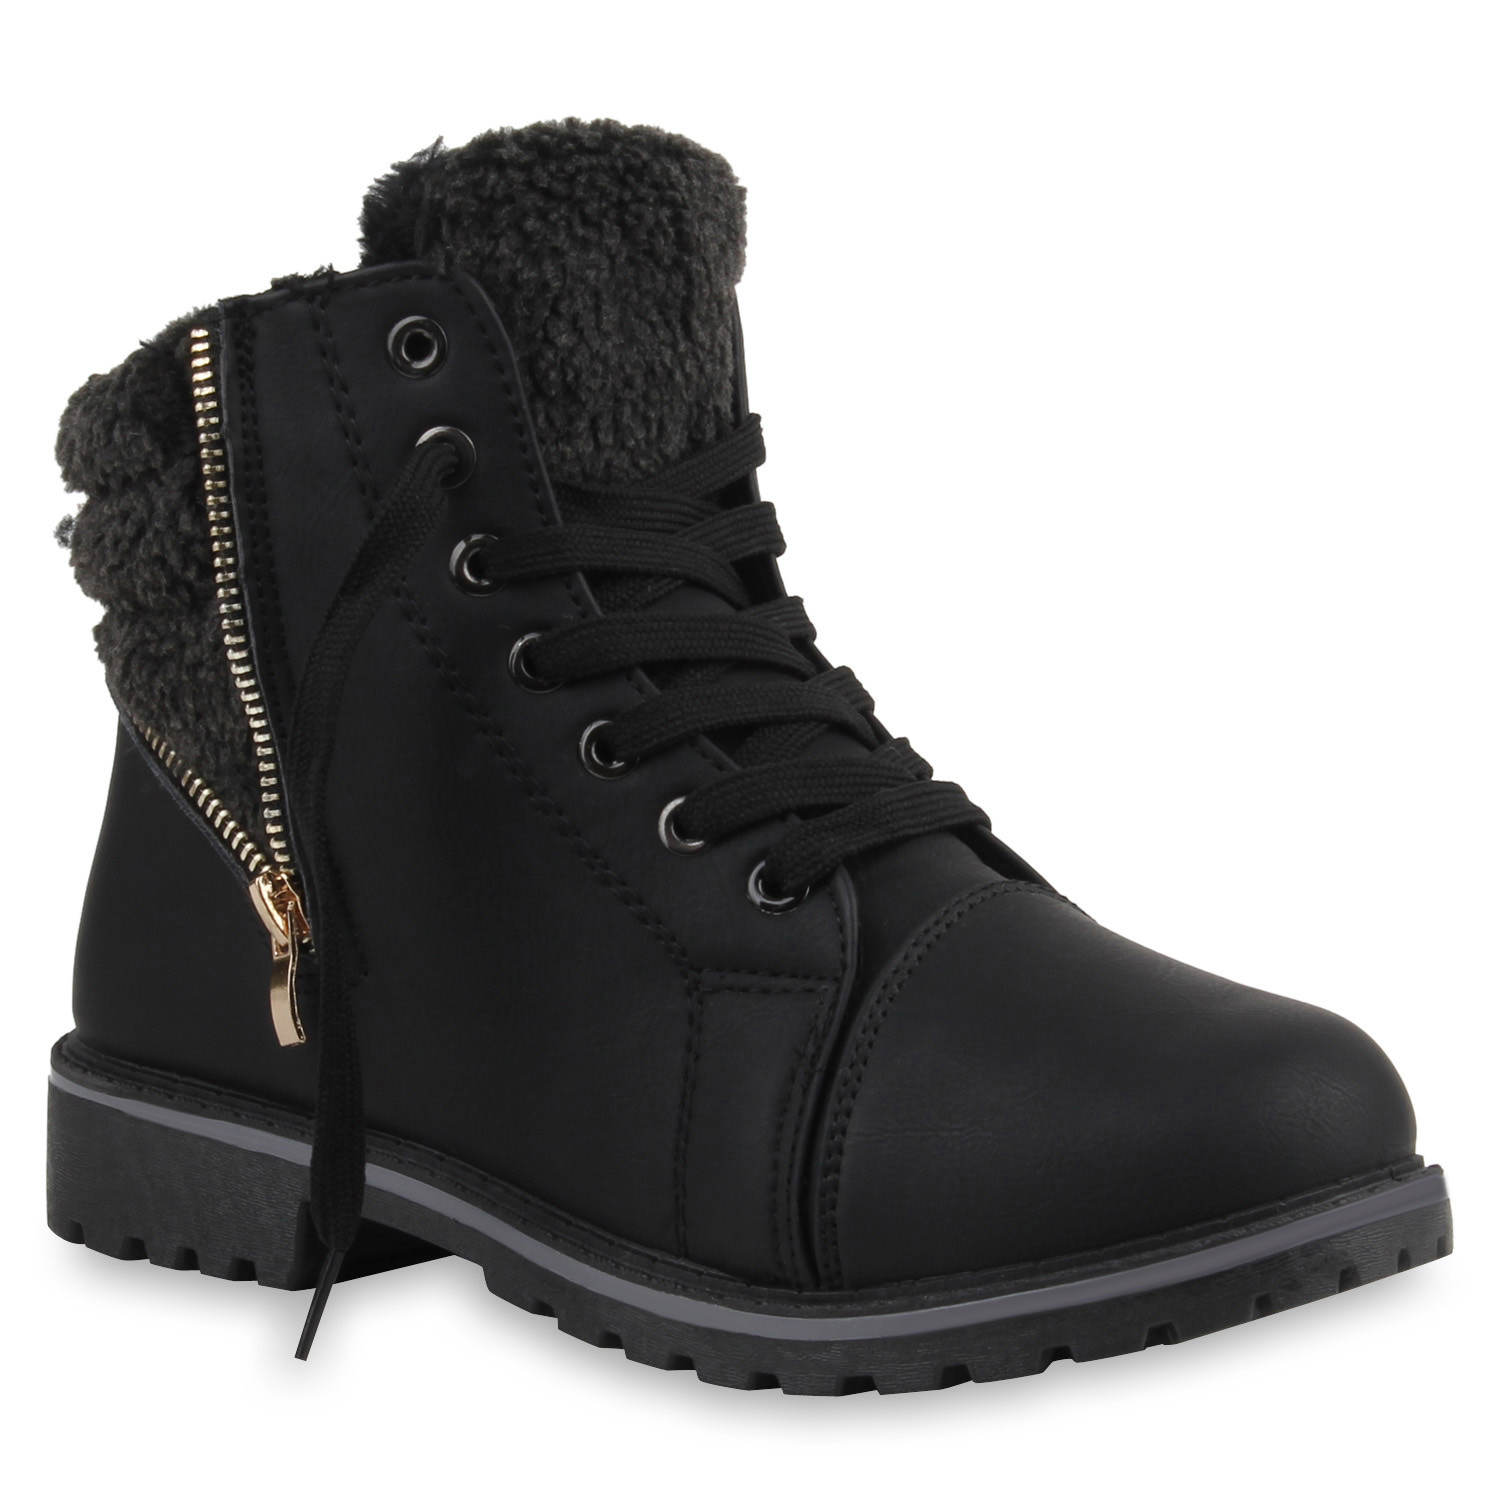 damen outdoor boots kunstpelz winter stiefeletten 890525 warm gef ttert ebay. Black Bedroom Furniture Sets. Home Design Ideas